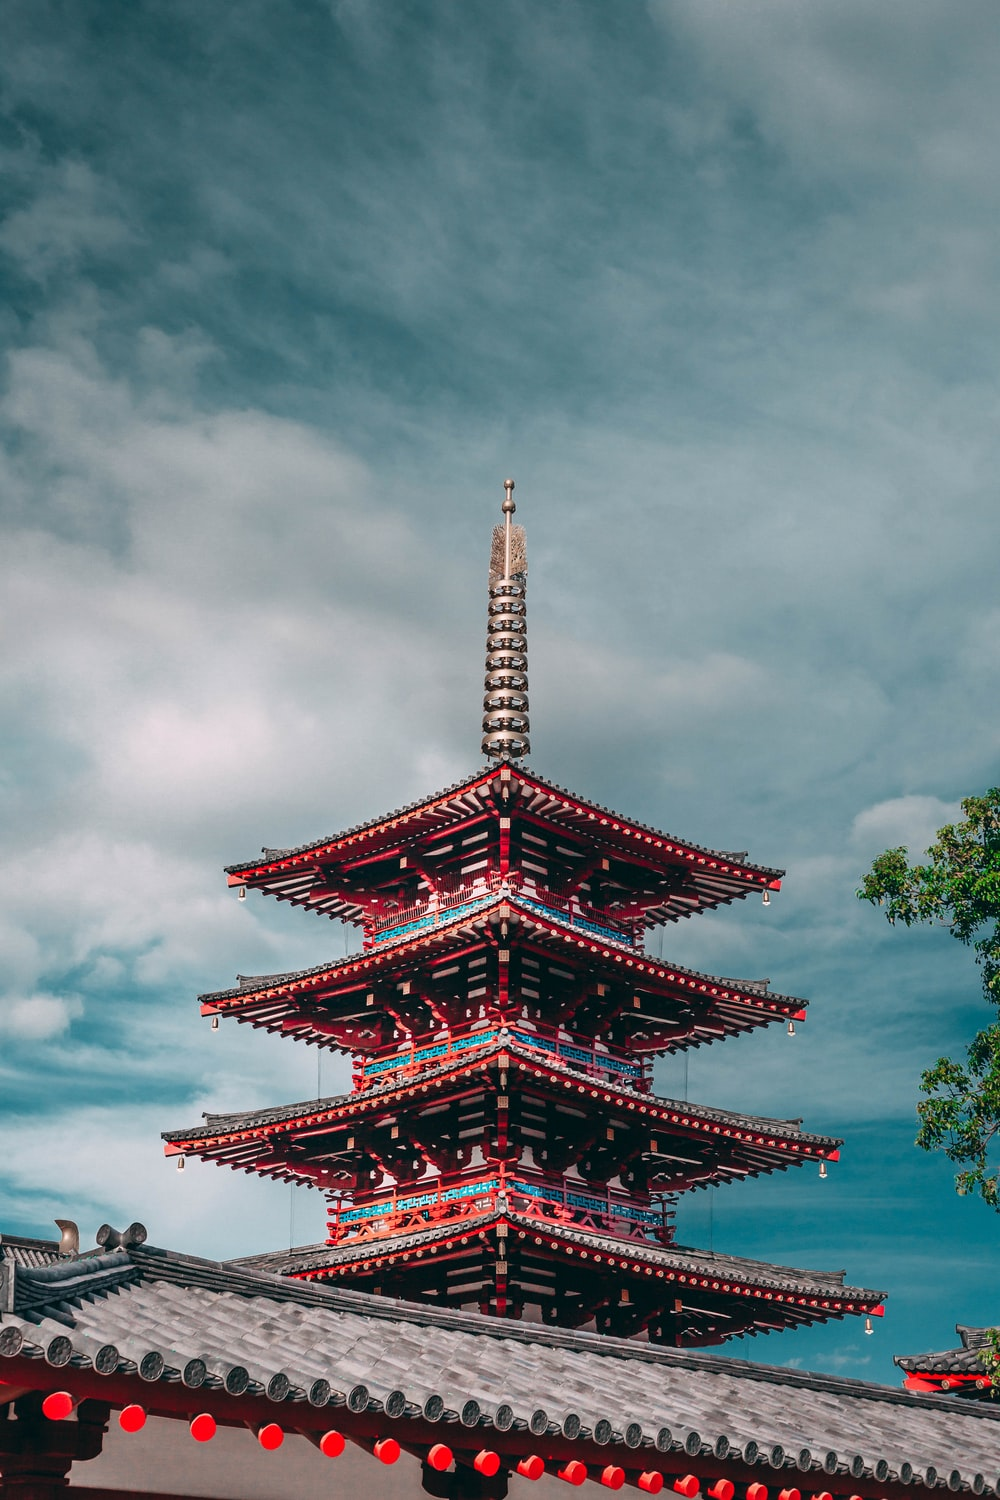 red and blue pagoda under a cloudy sky